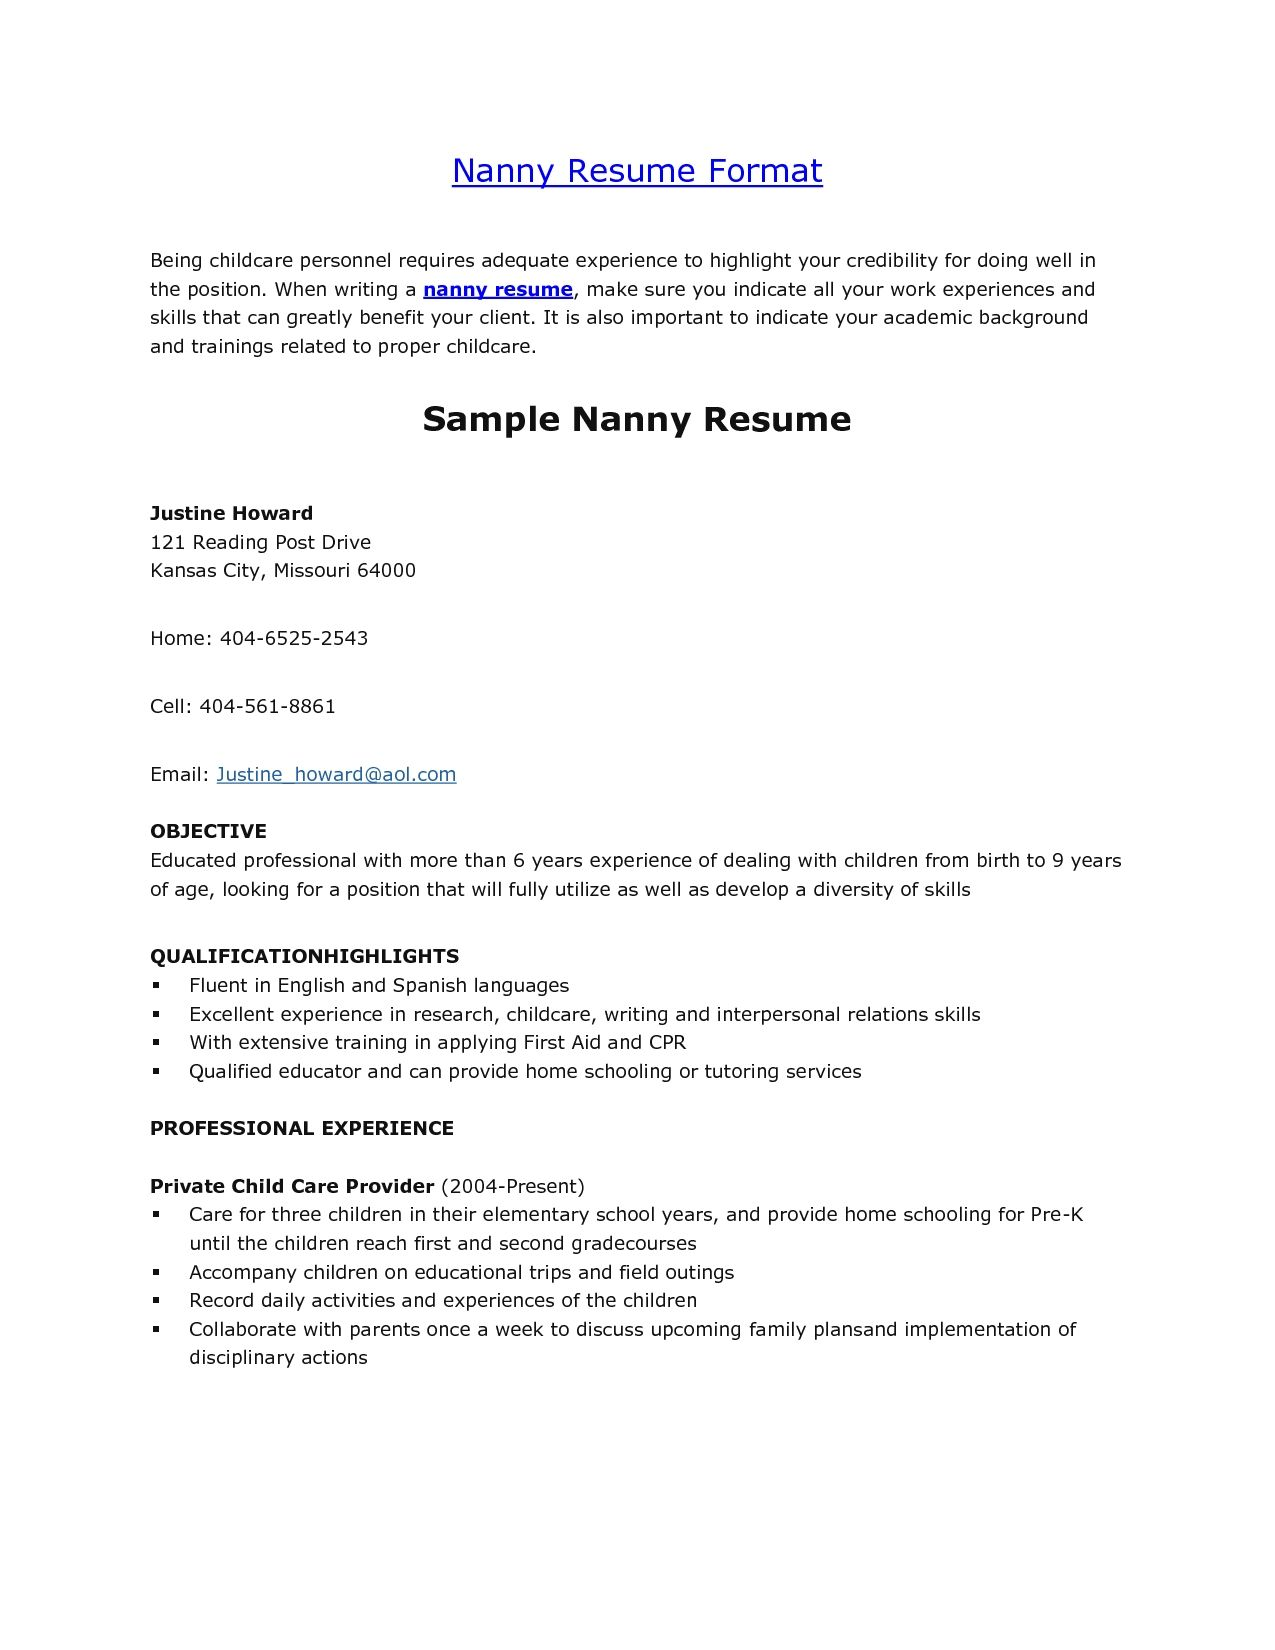 Explore Nanny Jobs, Resume Objective And More!